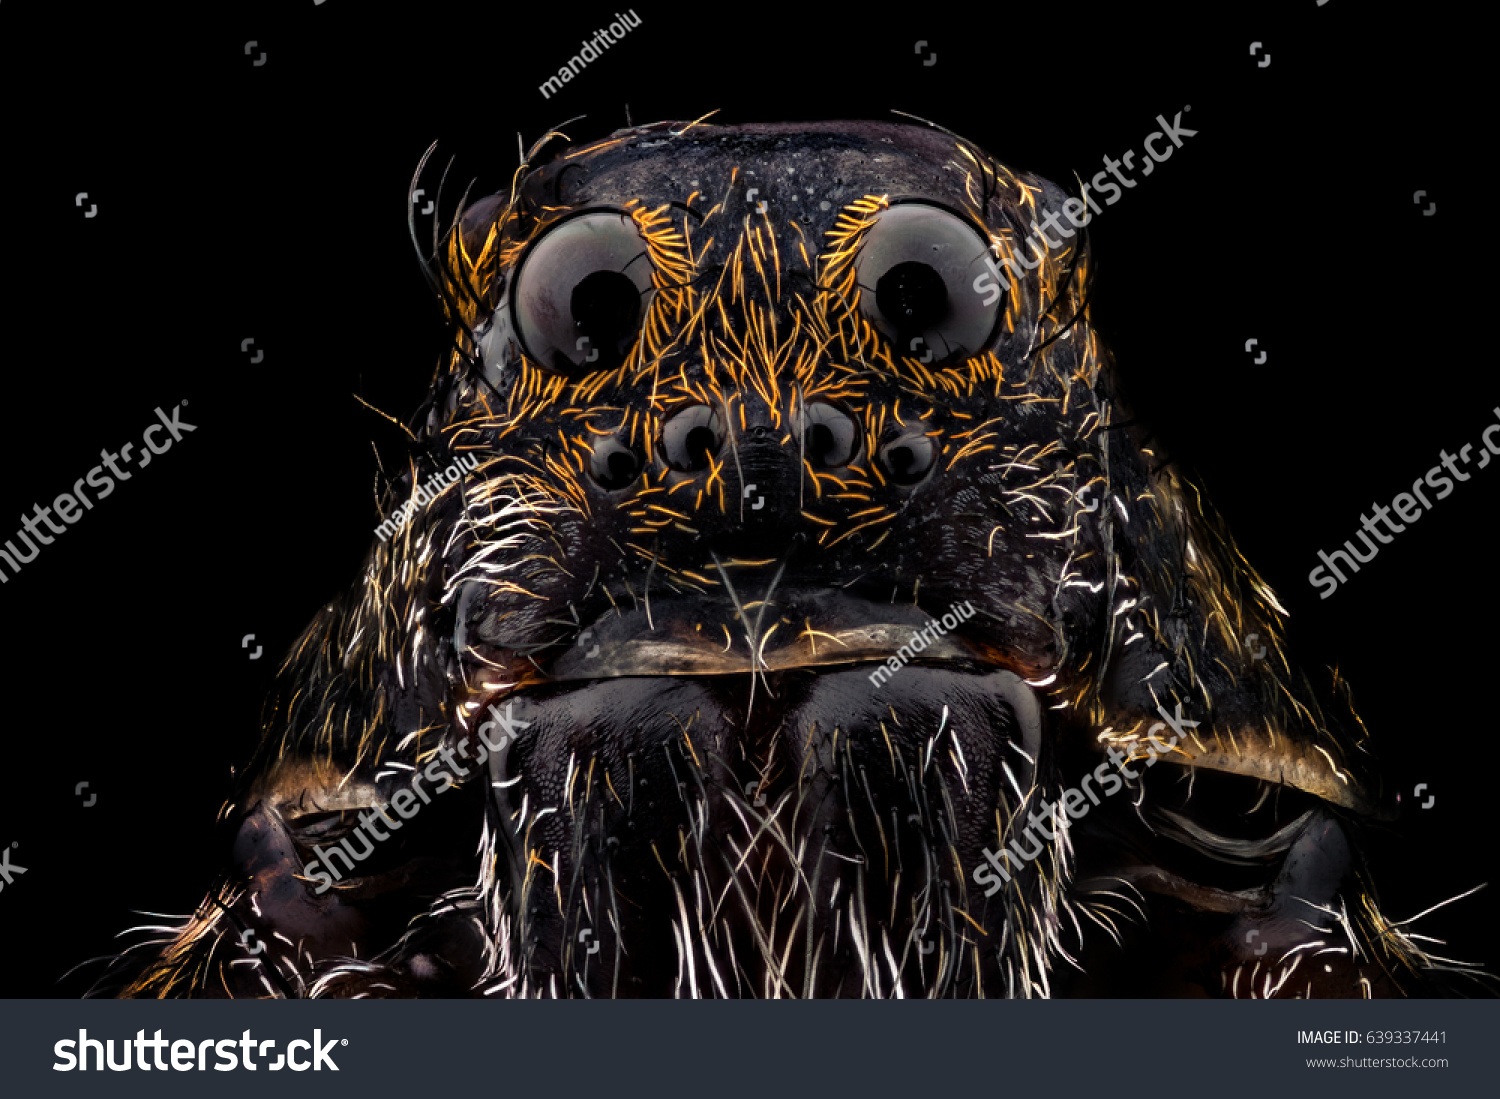 stock-photo-portrait-of-a-wolf-spider-ma